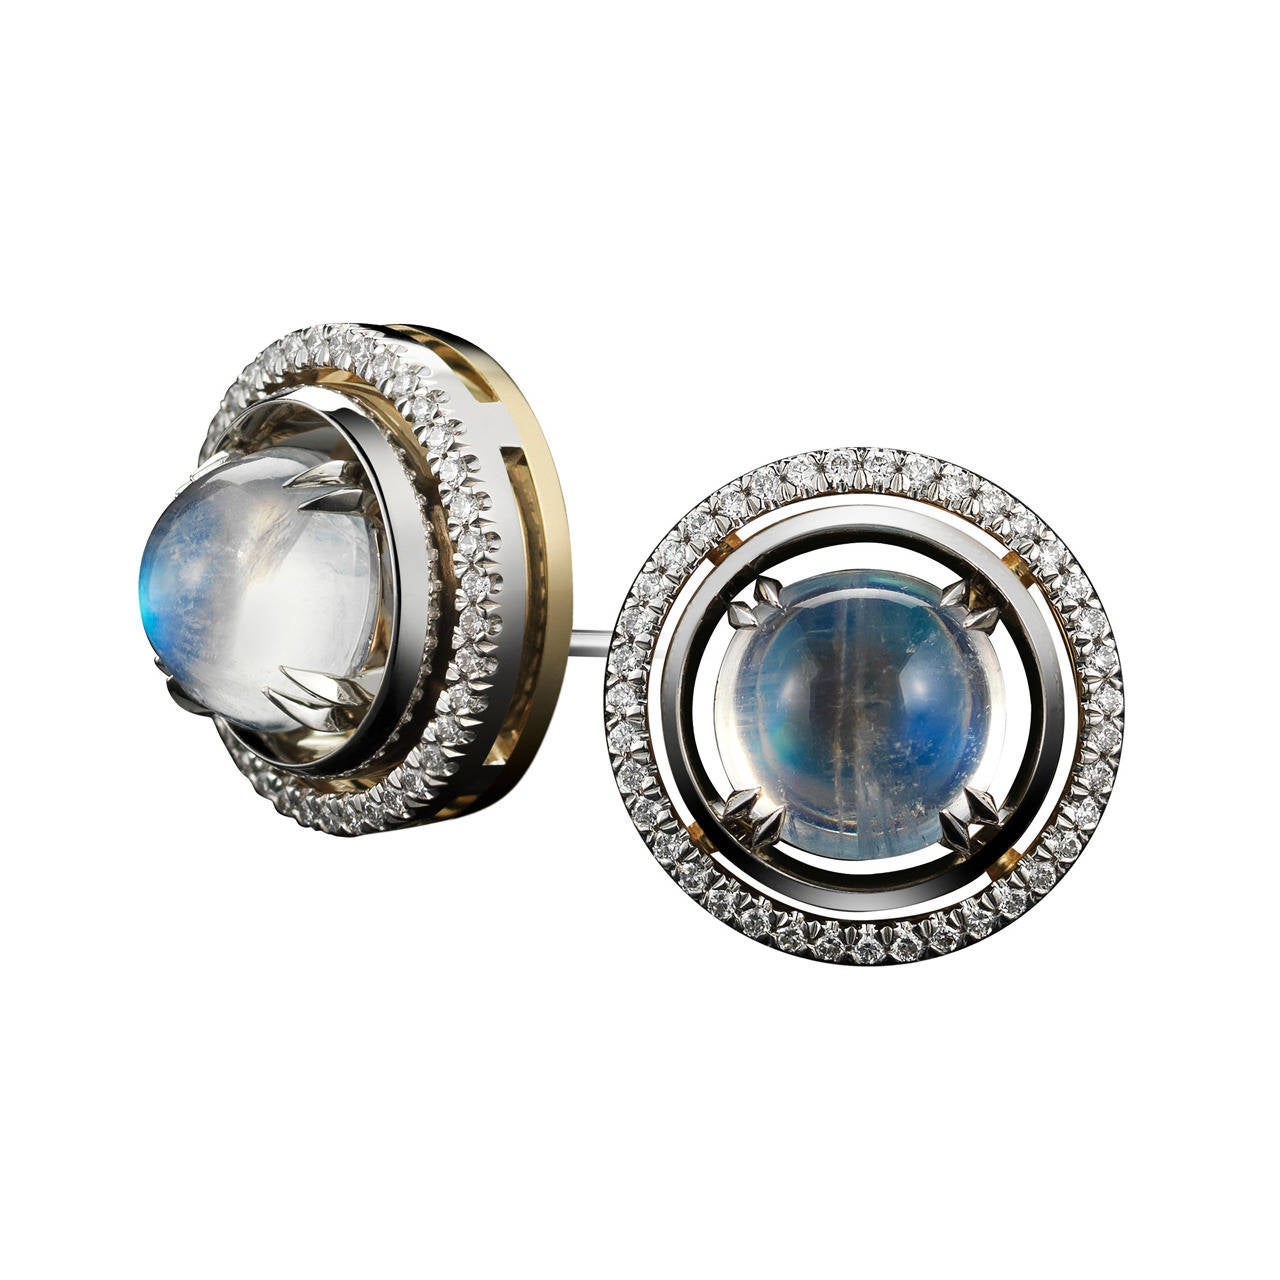 Alexandra Mor Medium Moonstone Studs with Diamond Earring Jackets For Sale